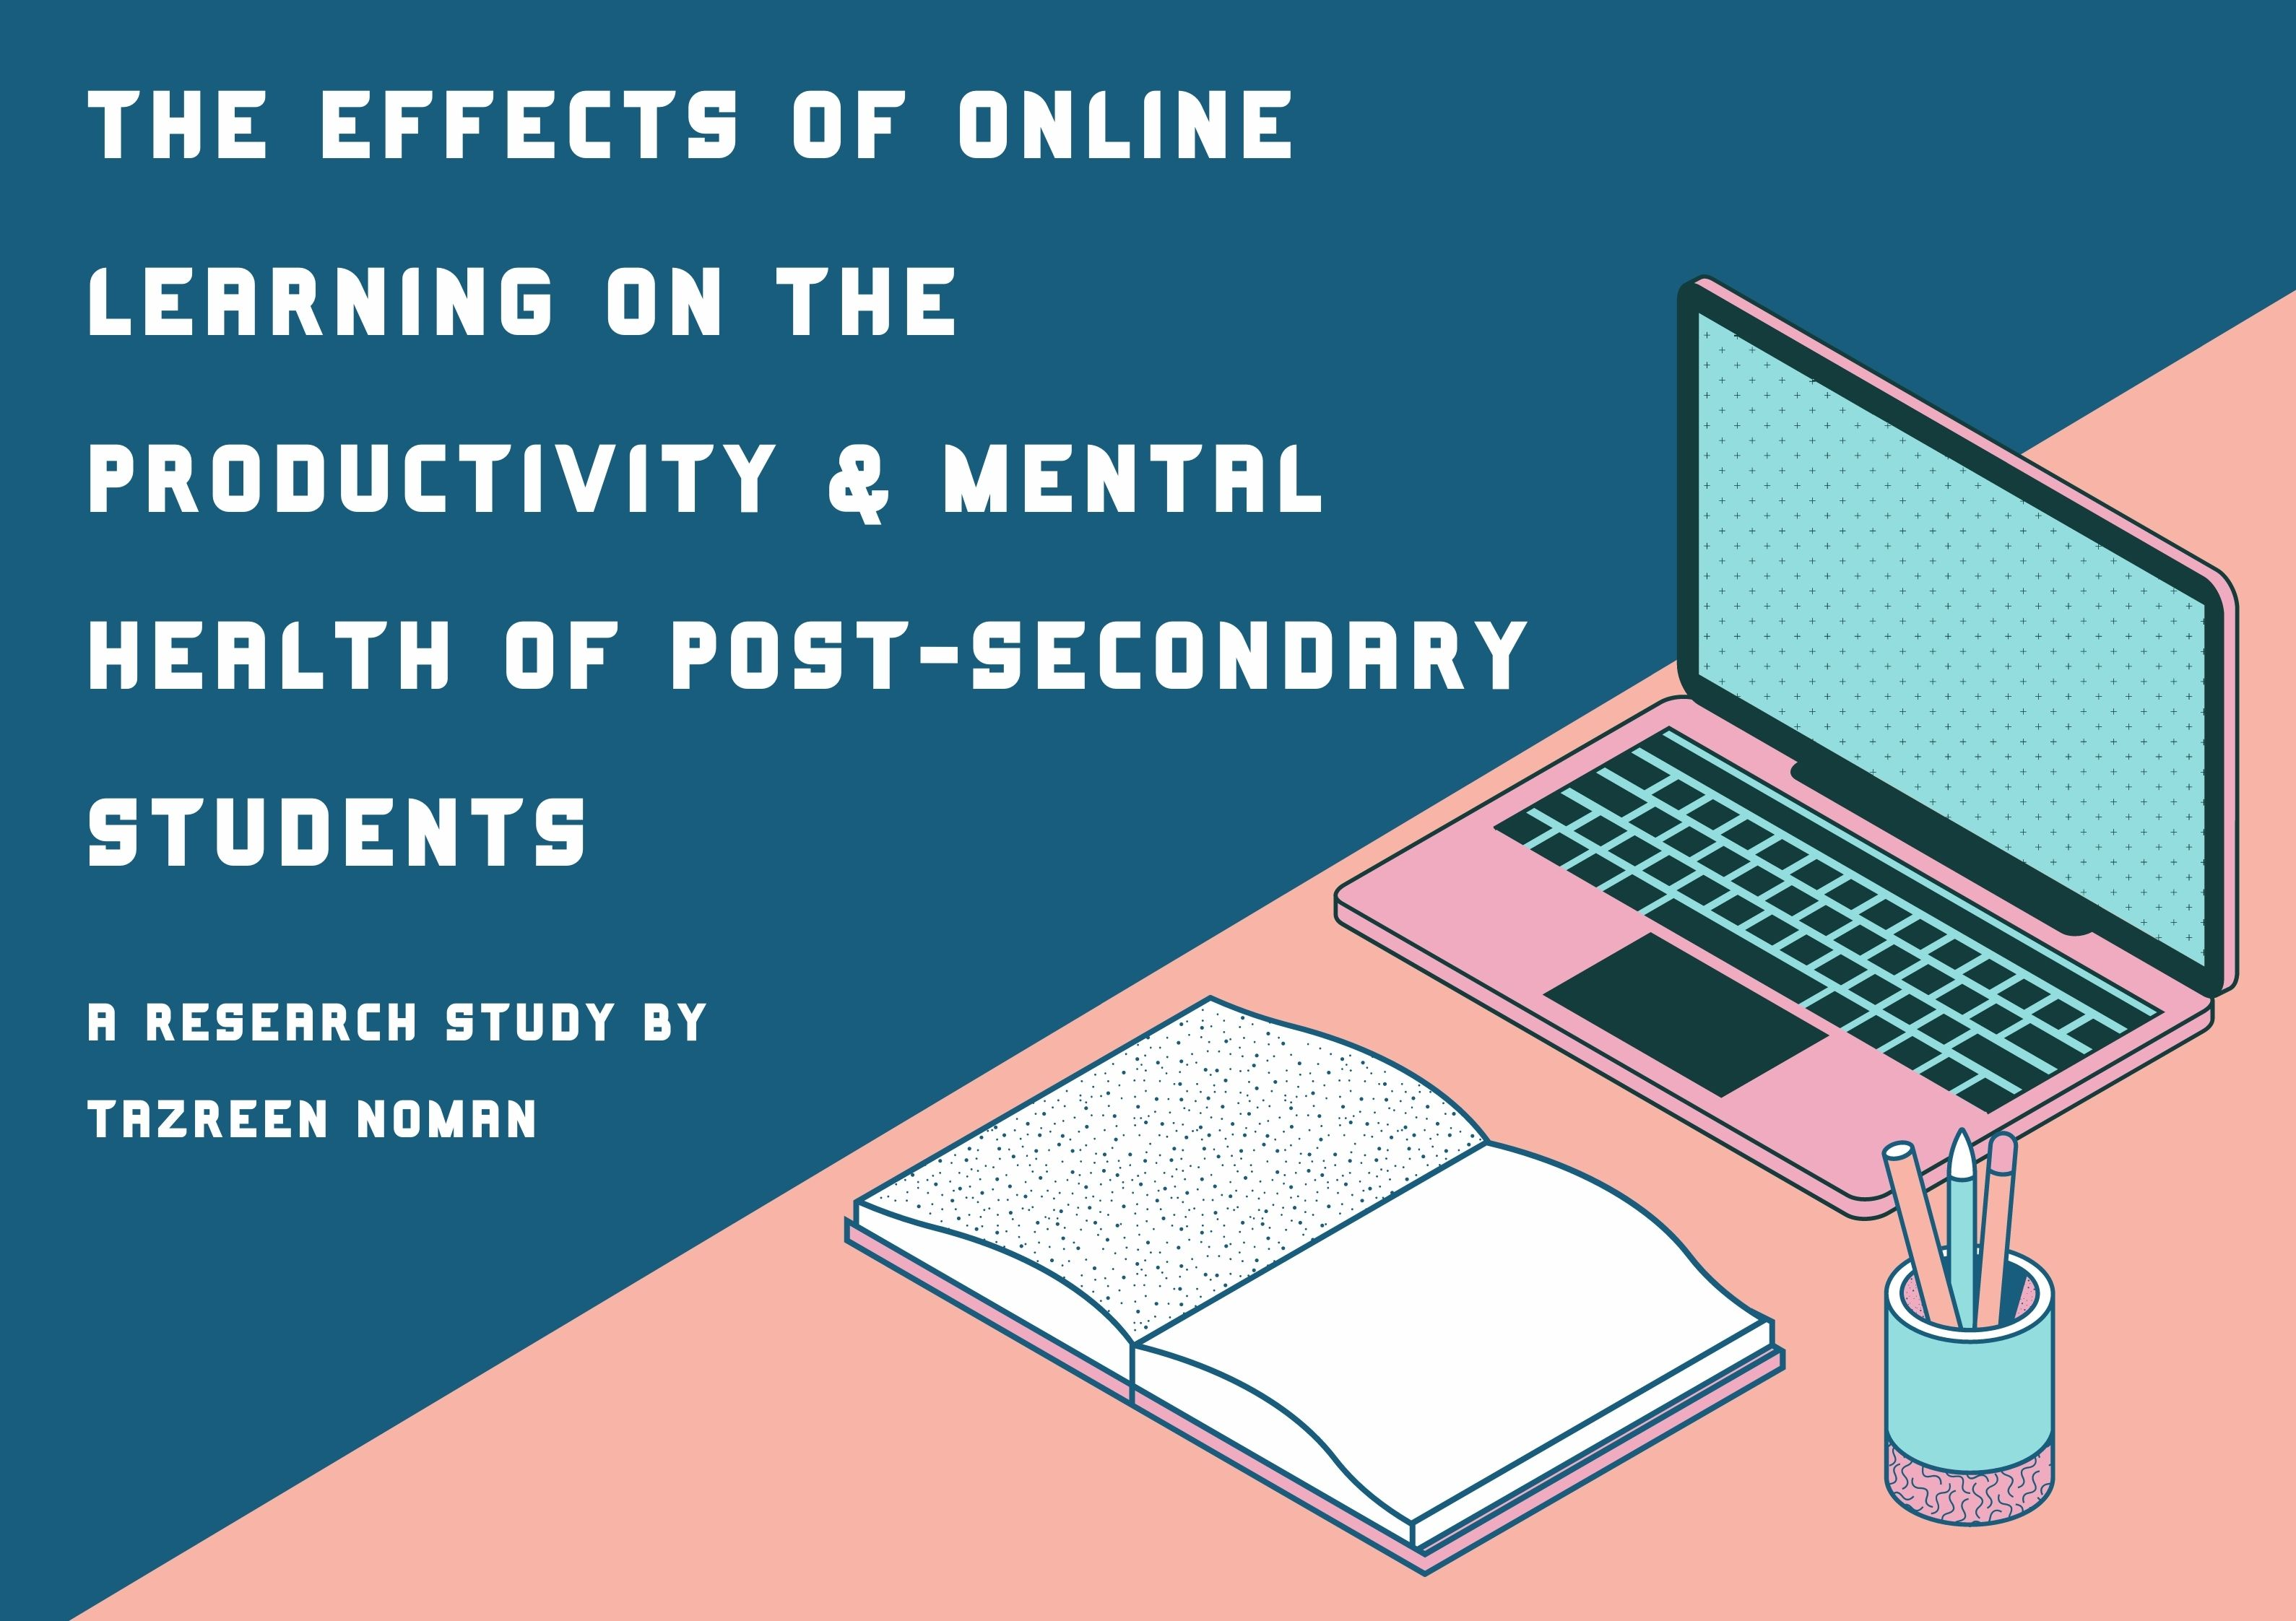 How Online Learning has Affected the Productivity & Mental Health of Post-Secondary Students